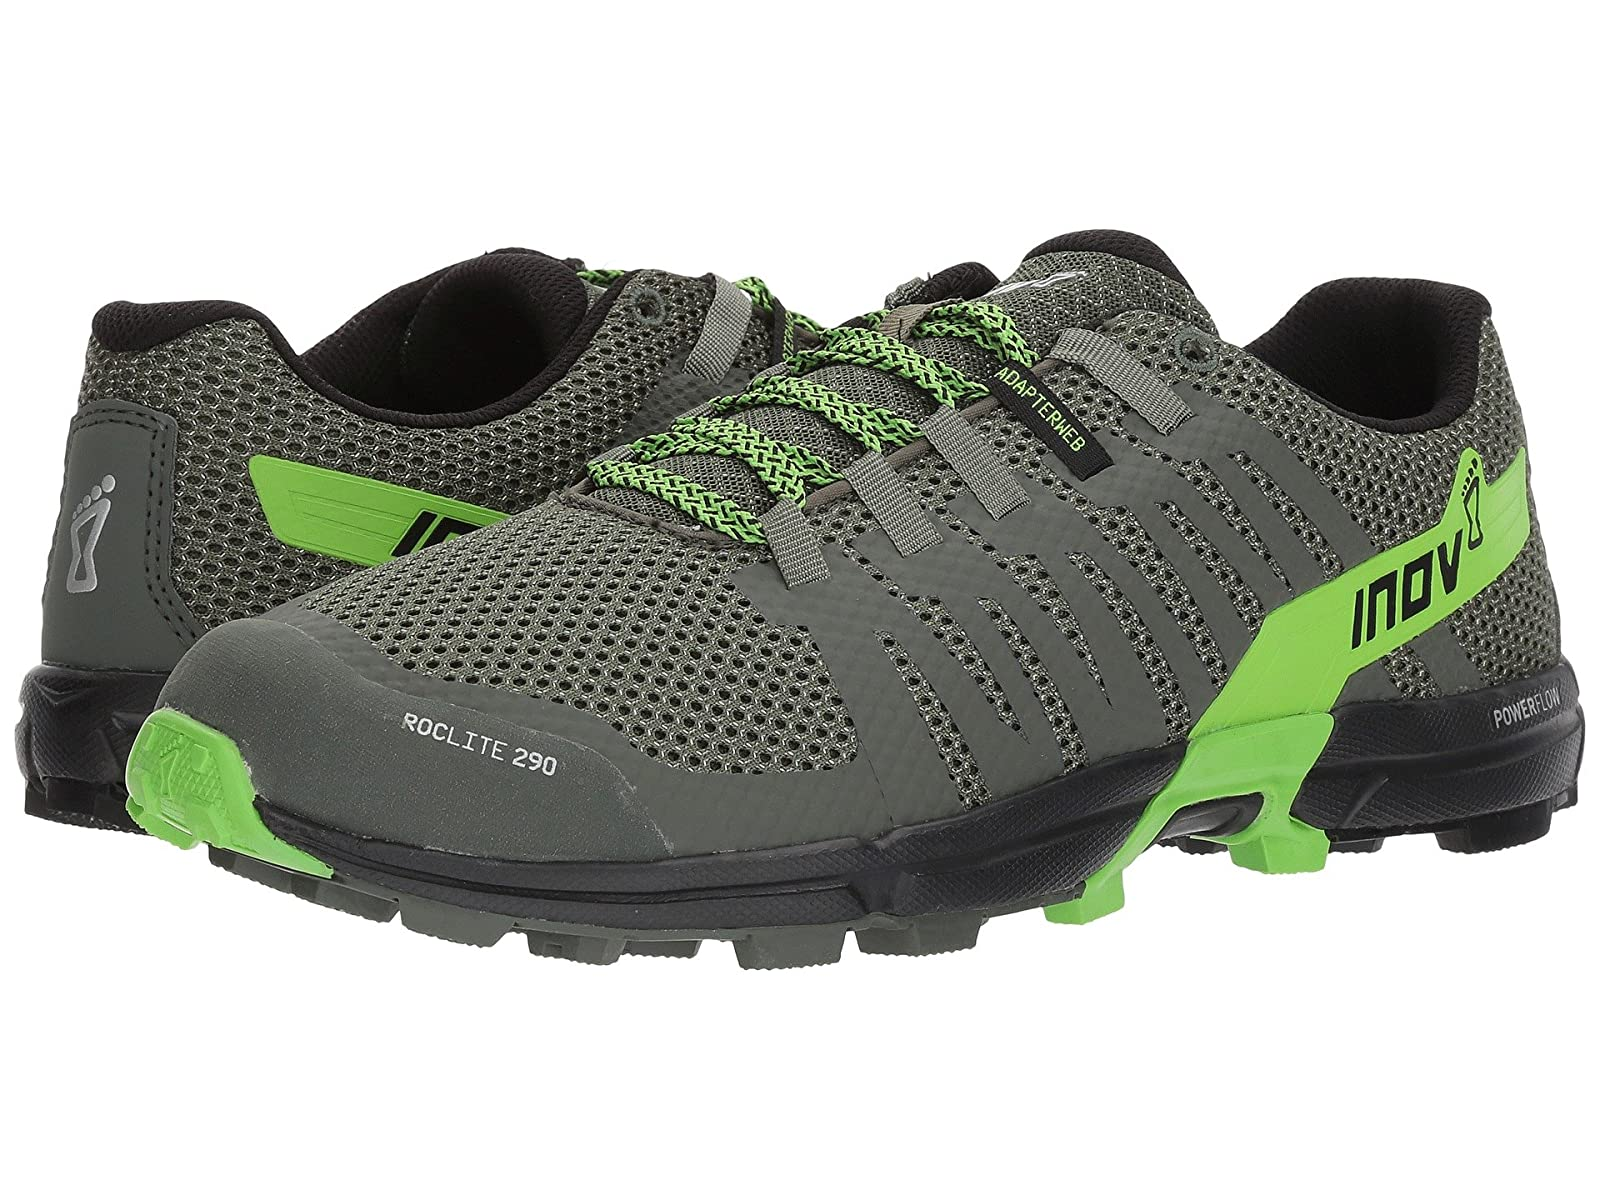 inov-8 Roclite 290Atmospheric grades have affordable shoes